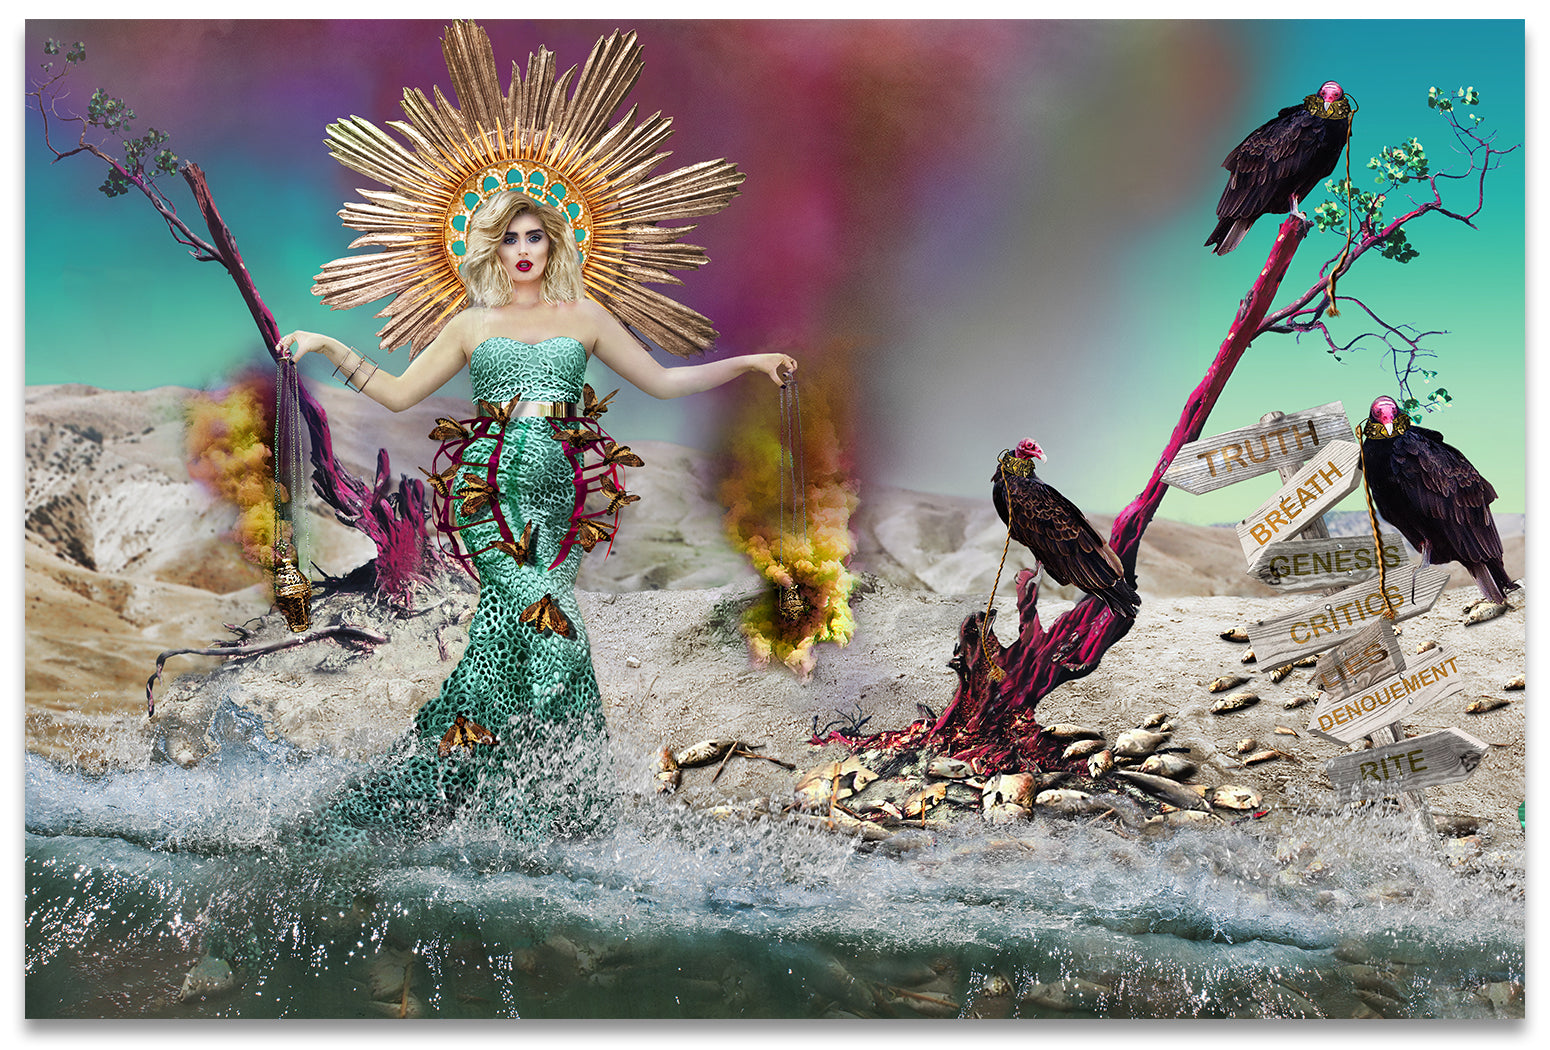 Book of Revelation Inspired Mother Mary, Madonna on Dead Beach surrounded by Vultures and Dead Fish.